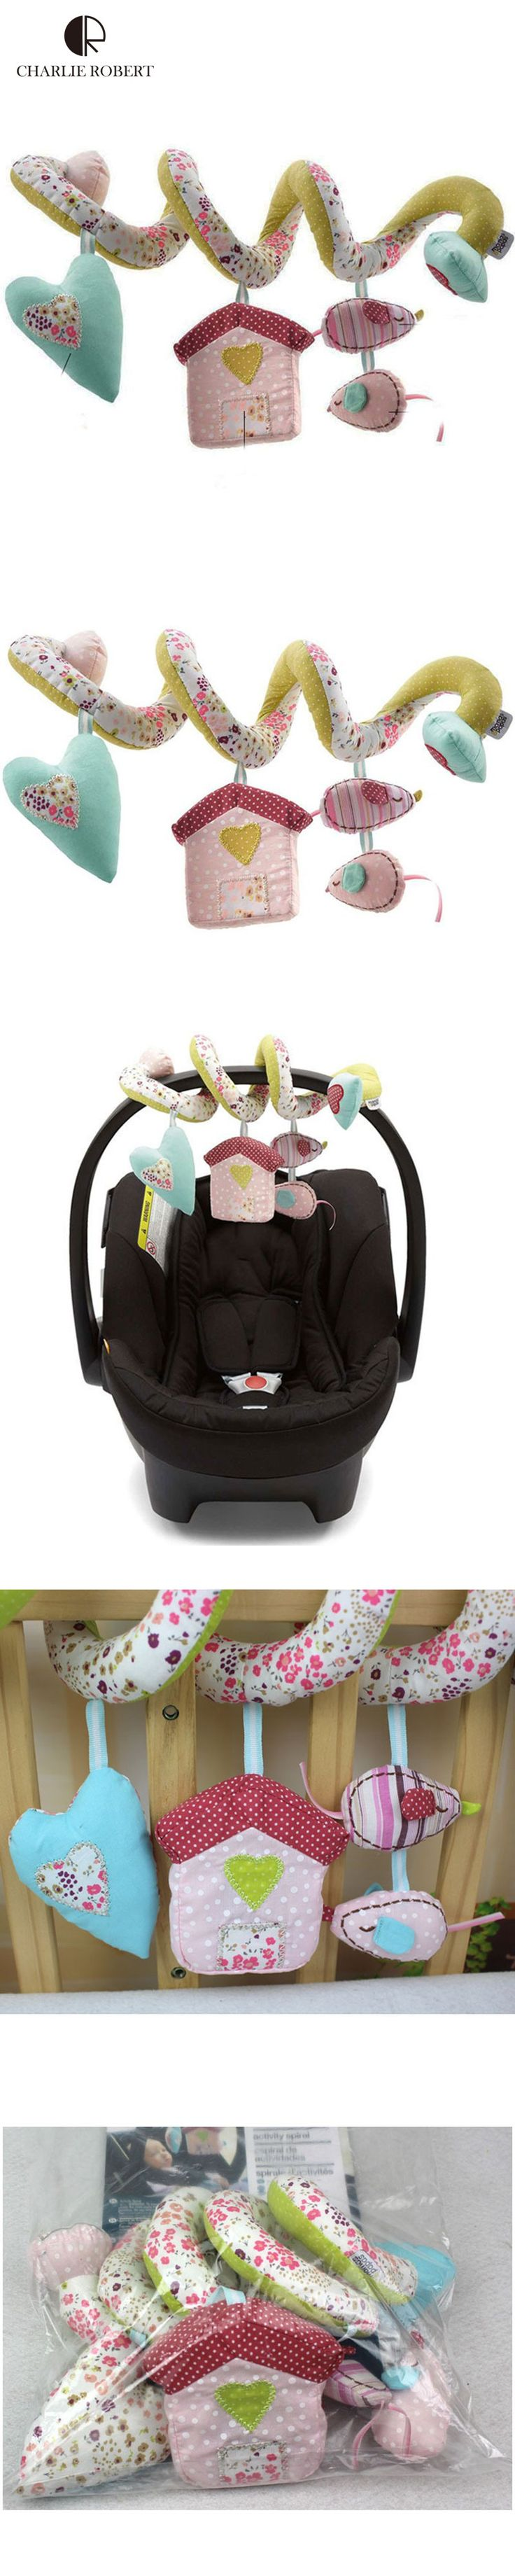 Wicker crib for sale durban - Vintage Flower Baby Toys Brand Baby Rattle Newborn Mobile Baby Music Rattles Baby Cot Beds Rattle